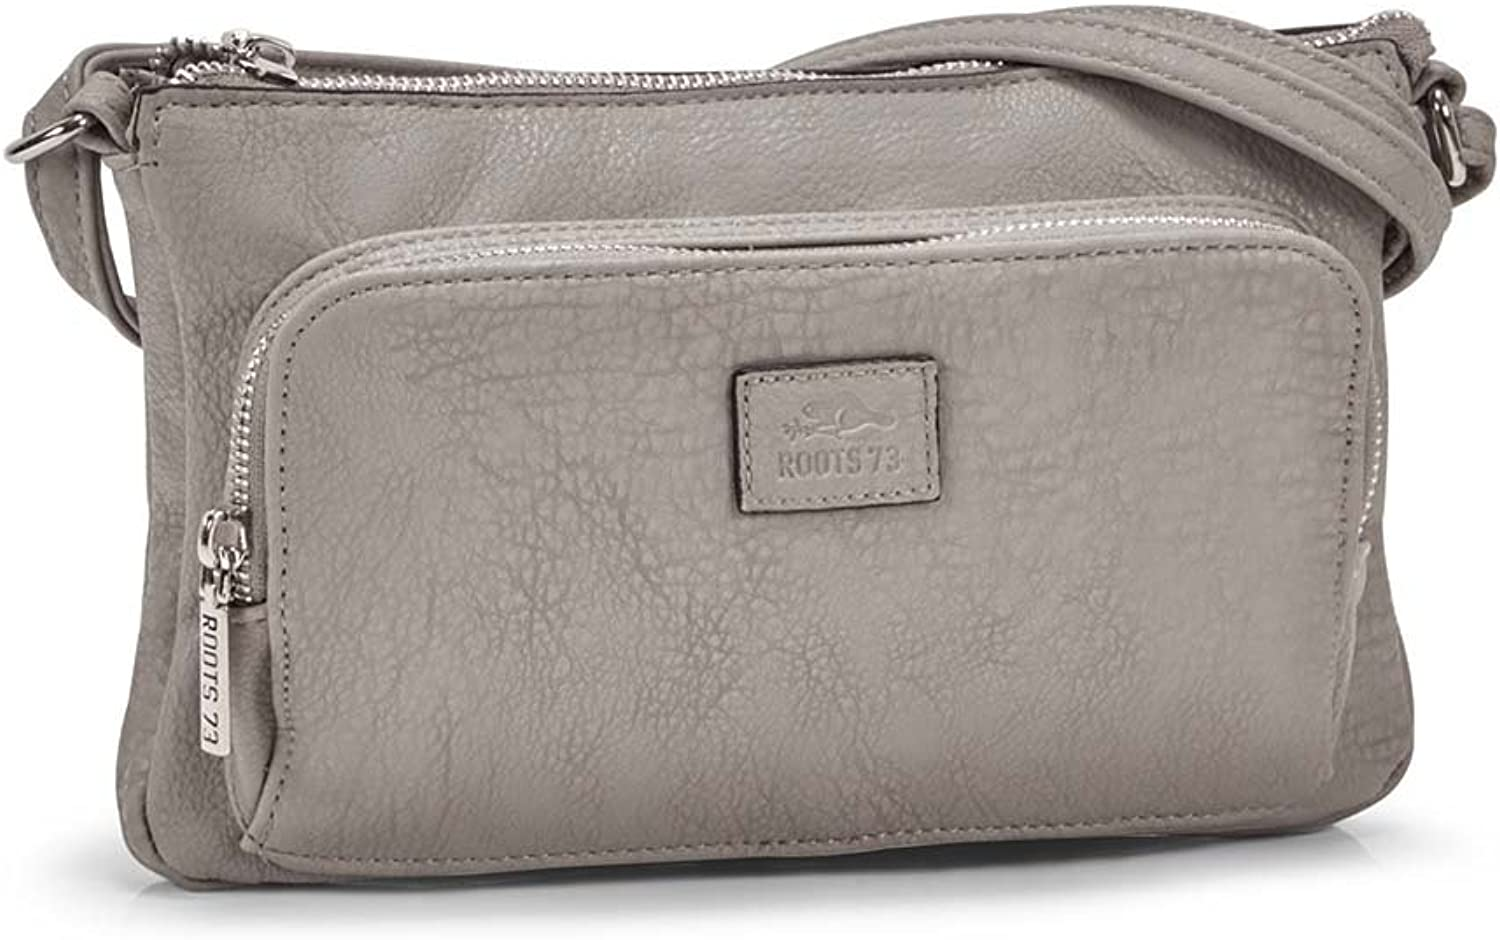 Roots73 Grey East west Crossbody